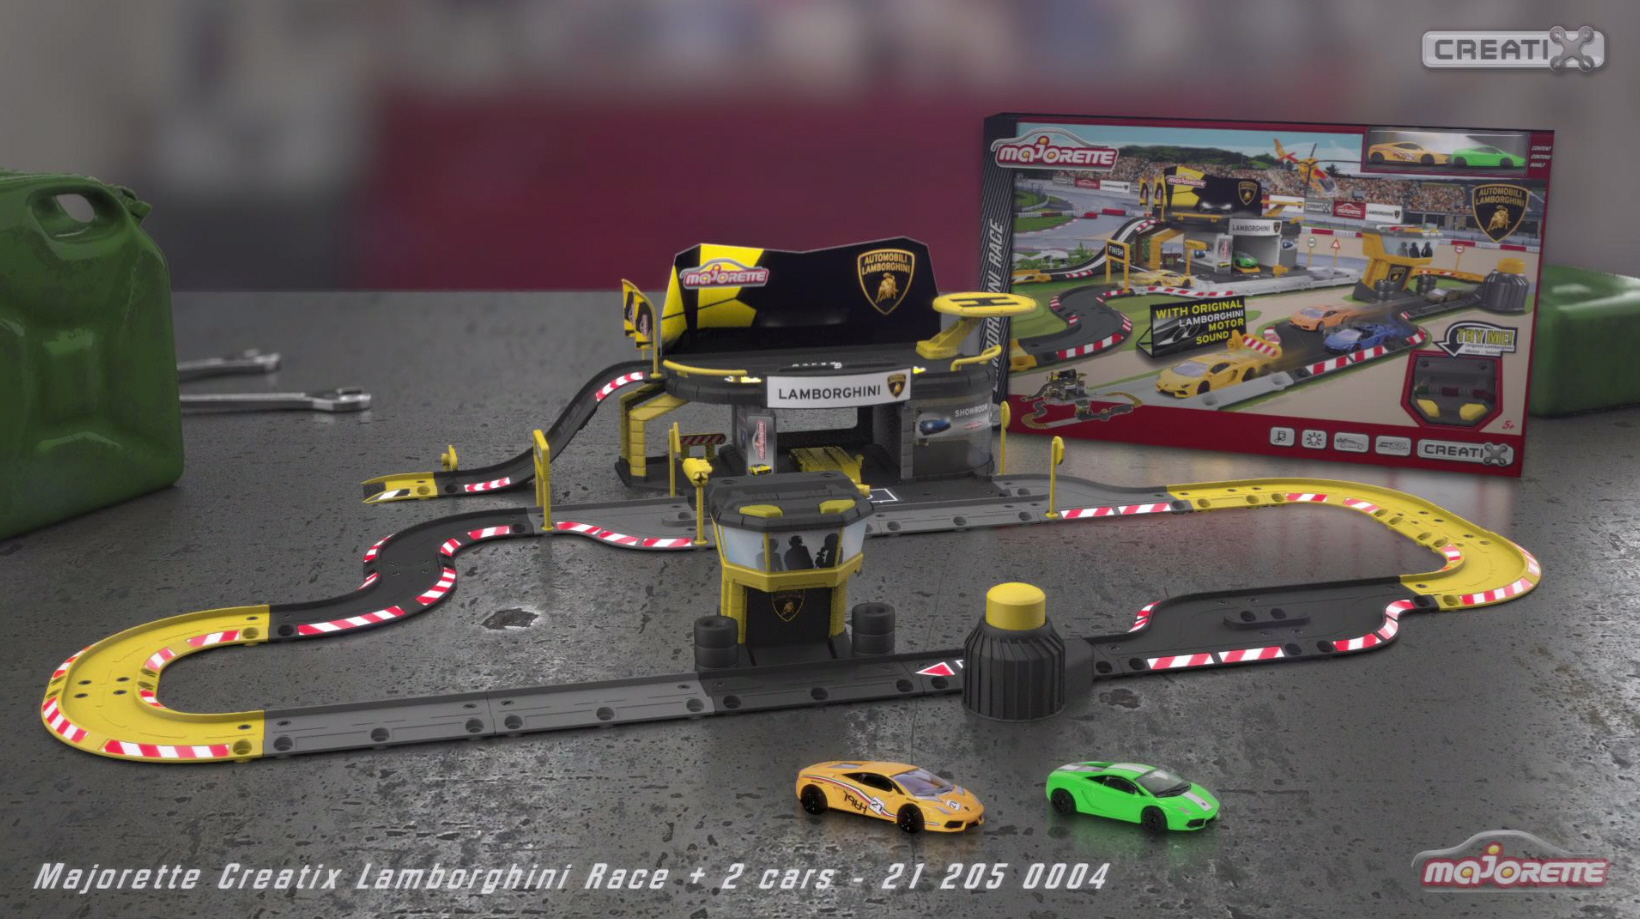 Majorette Creatix Lamborghini Race/Rennstrecke - Aufbauvideo/Instruction Manual